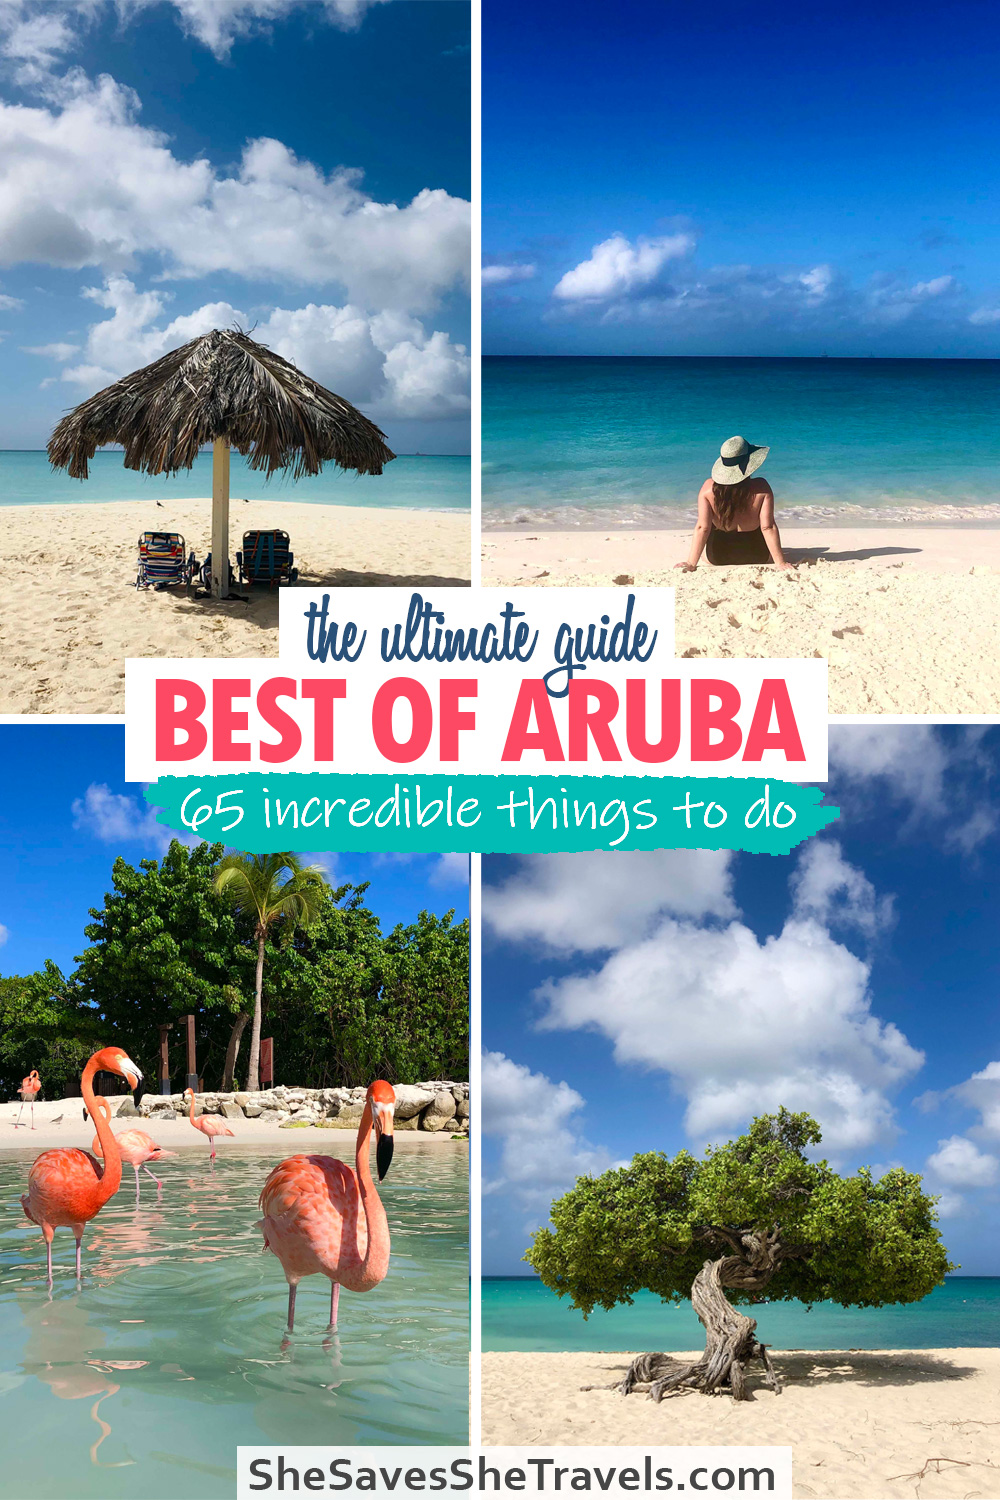 the ultimate guide best of aruba 65 incredible things to do